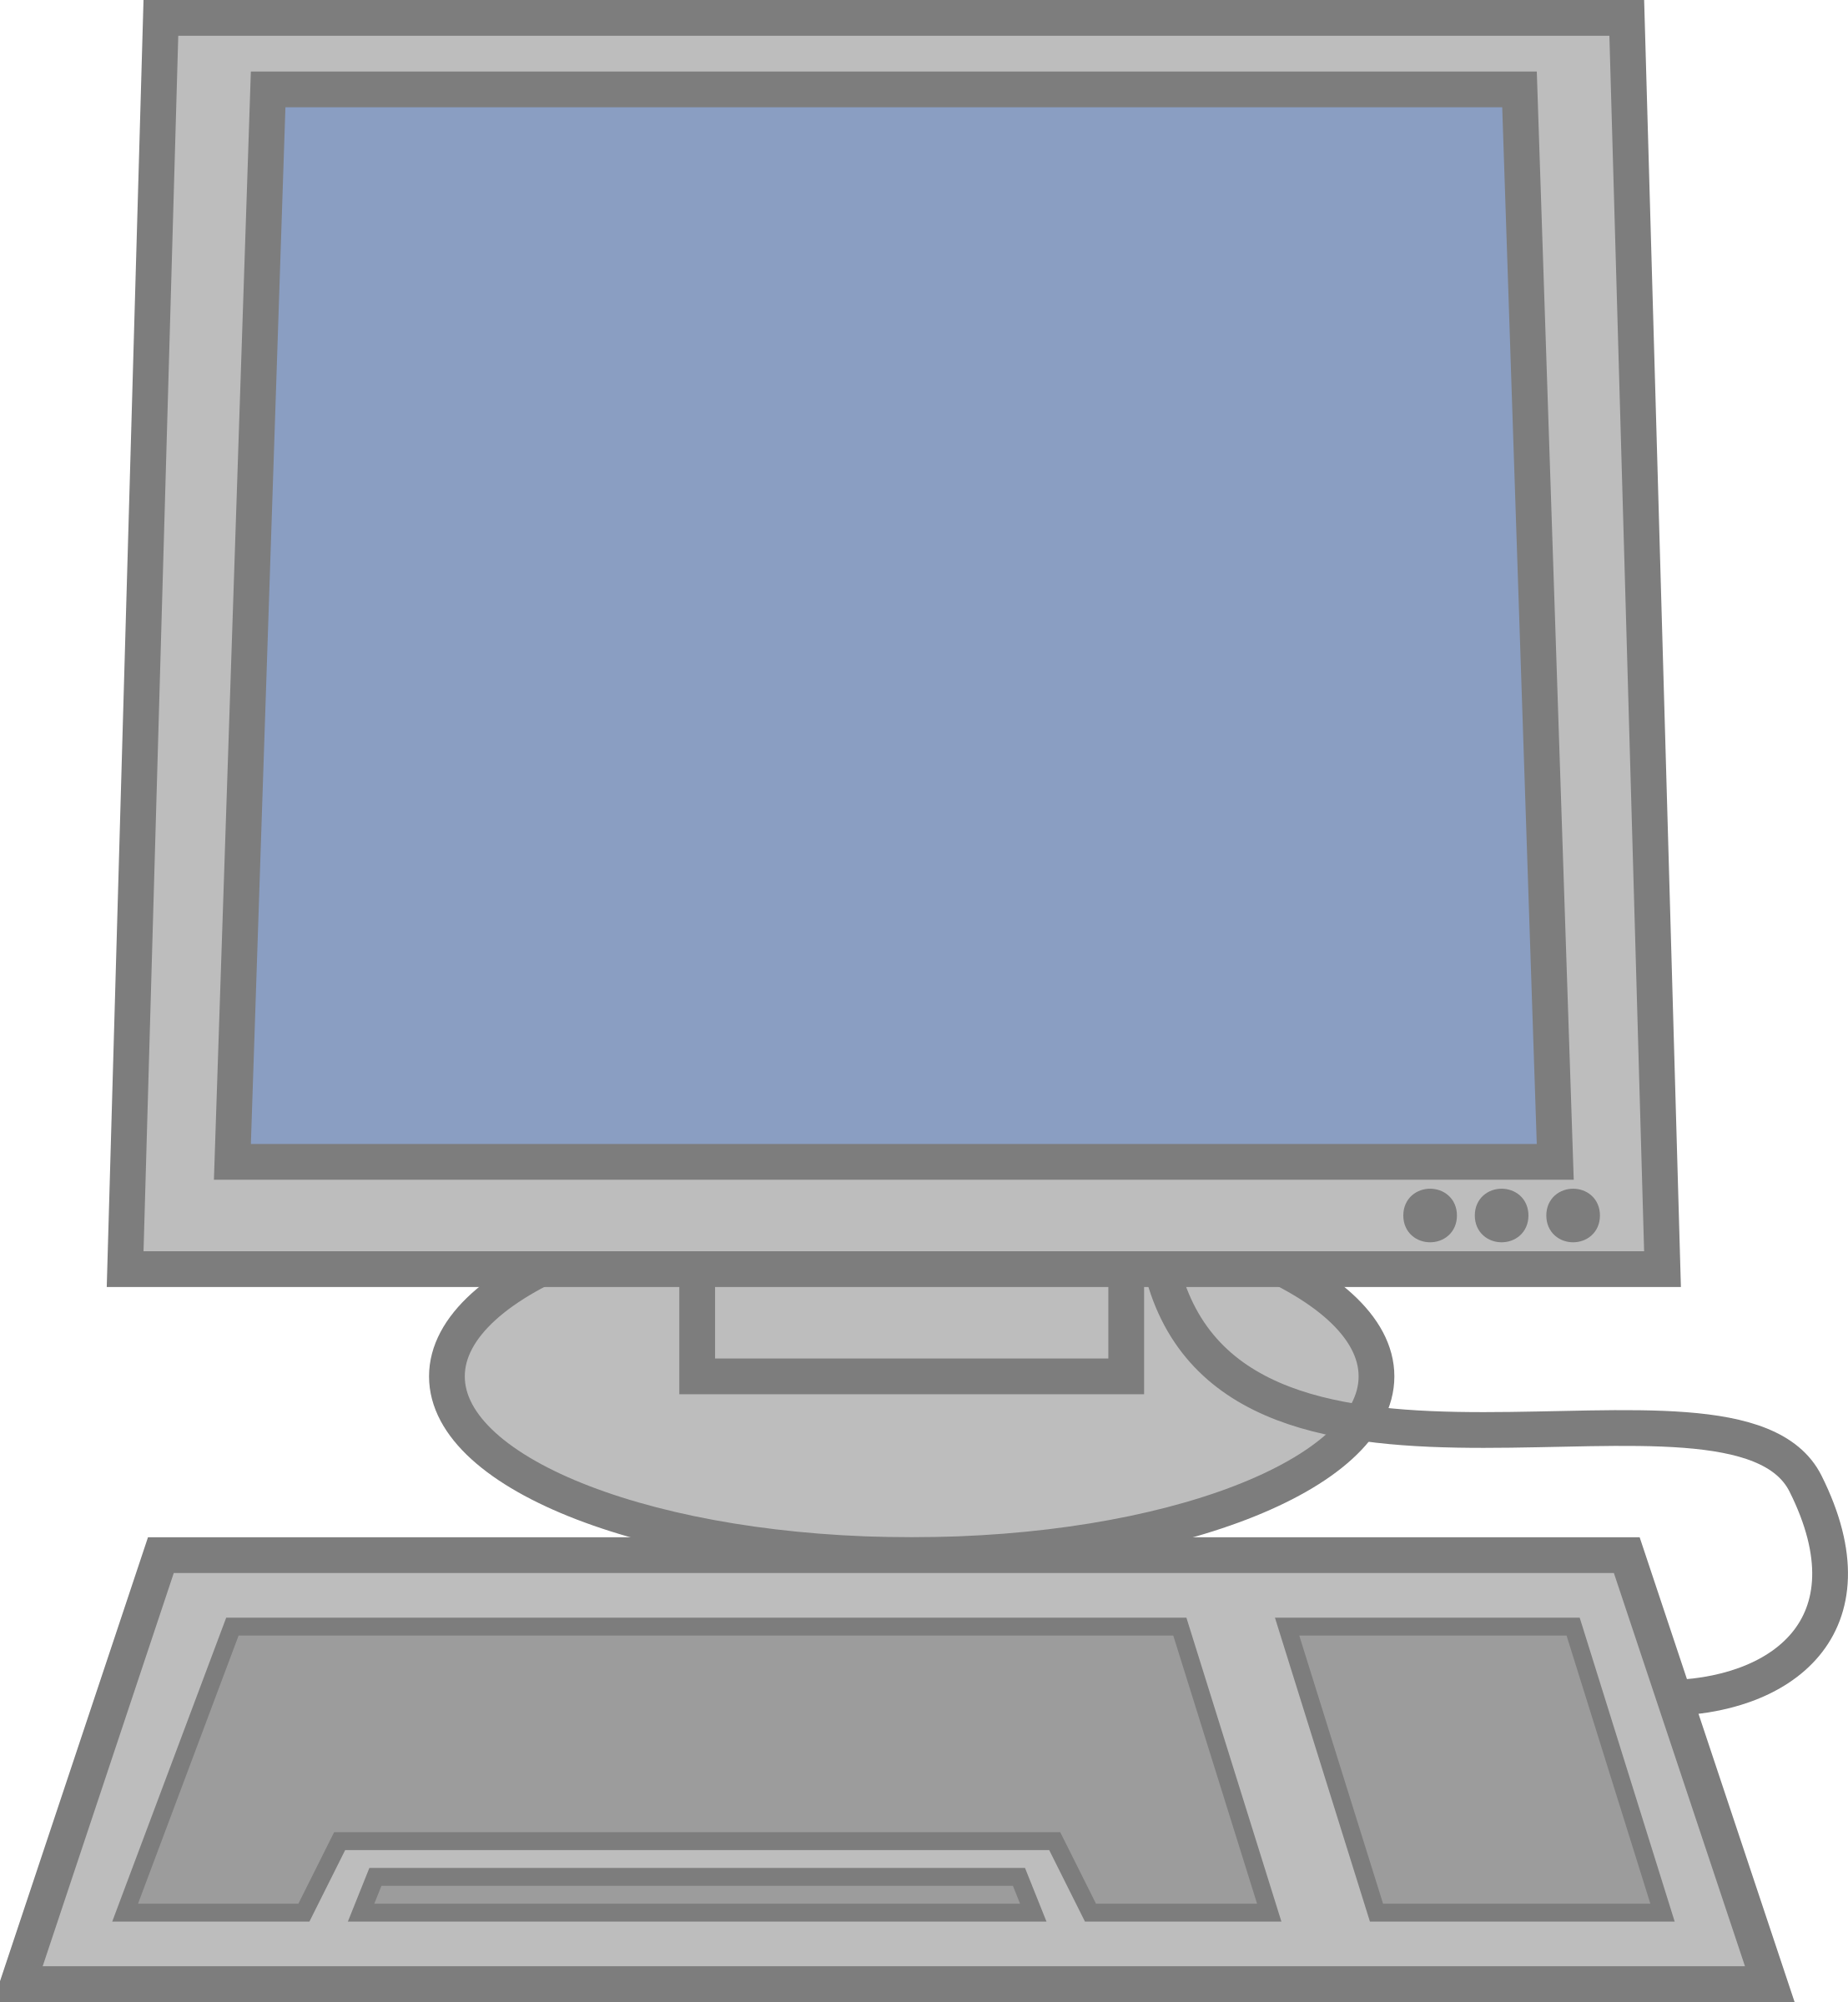 Computer clip art gallery free clipart images